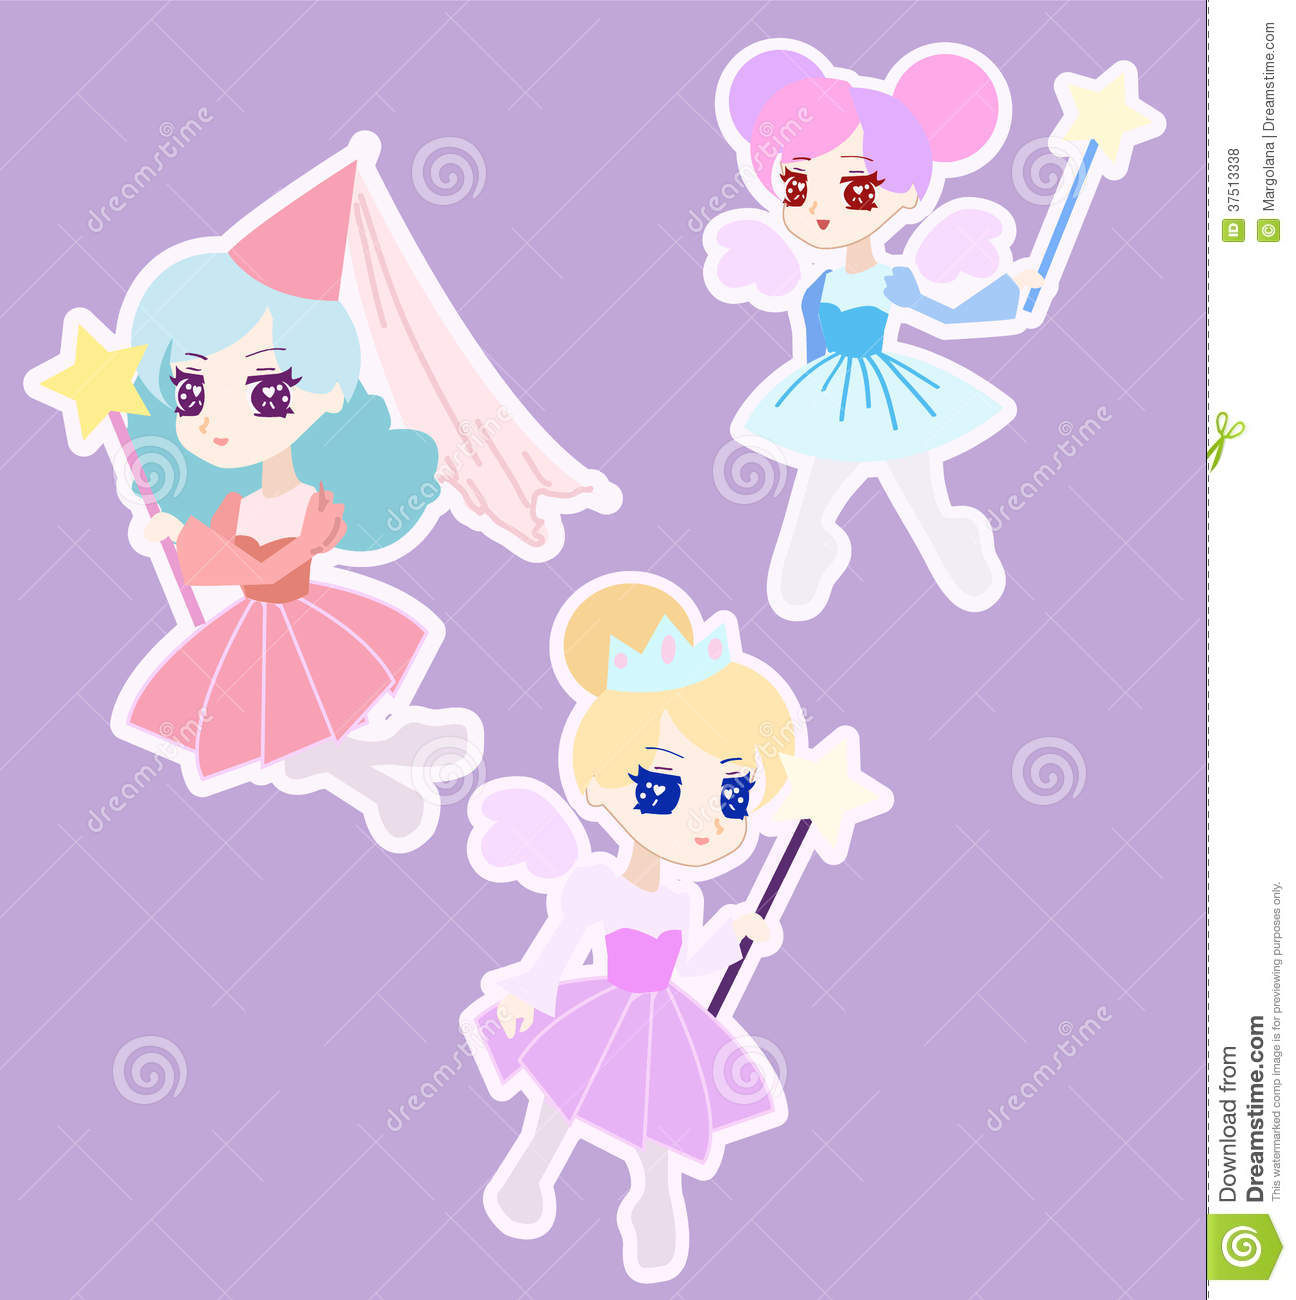 Awesome Cute Fairy Princess Character With Wings Royalty Free Stock Photos Hairstyle Inspiration Daily Dogsangcom